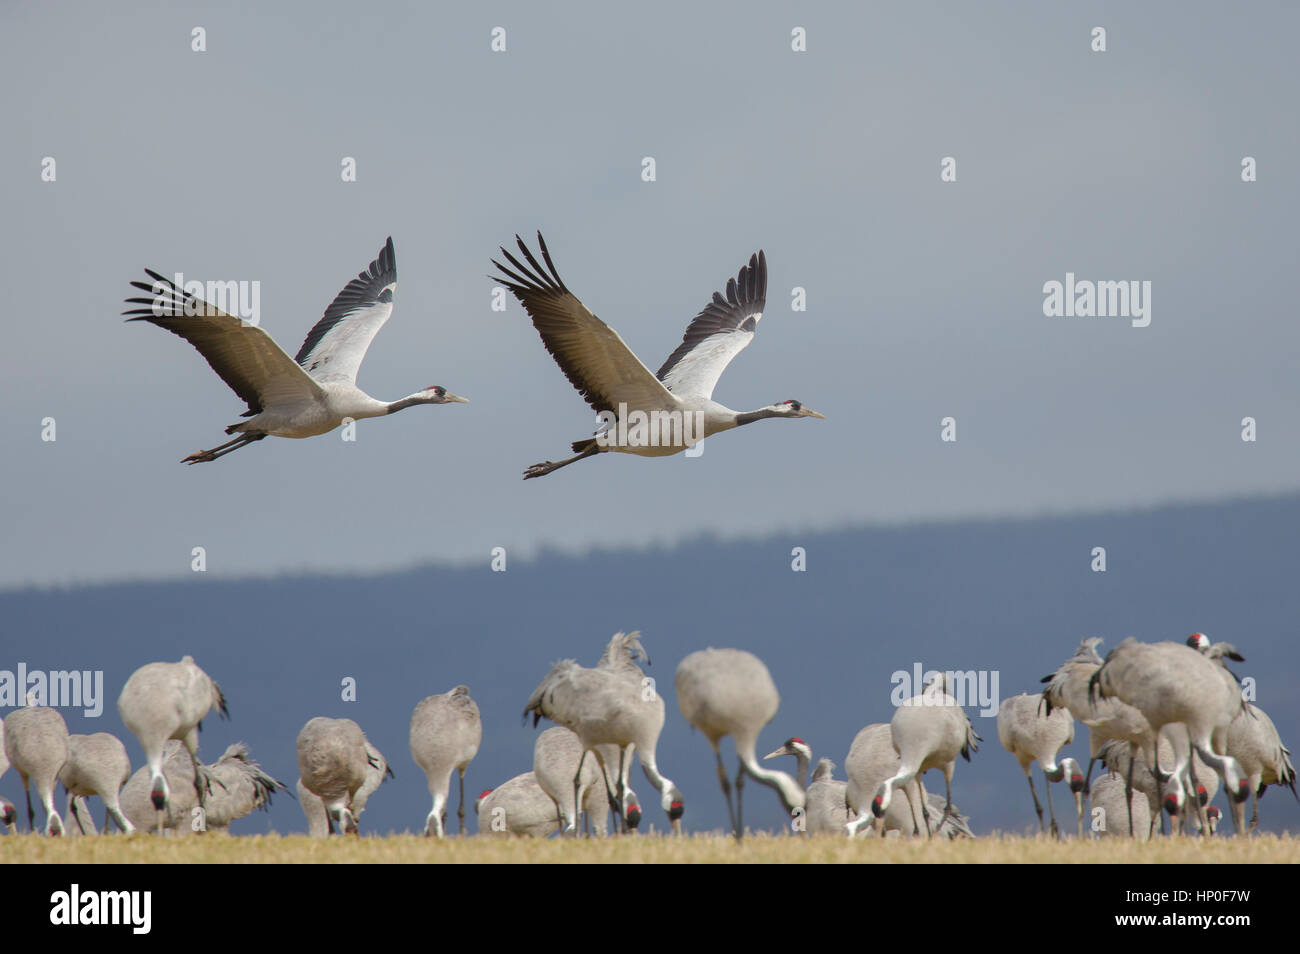 Two cranes (Grus grus) flying over a group of cranes on their migration stopover in Sweden,. Stock Photo